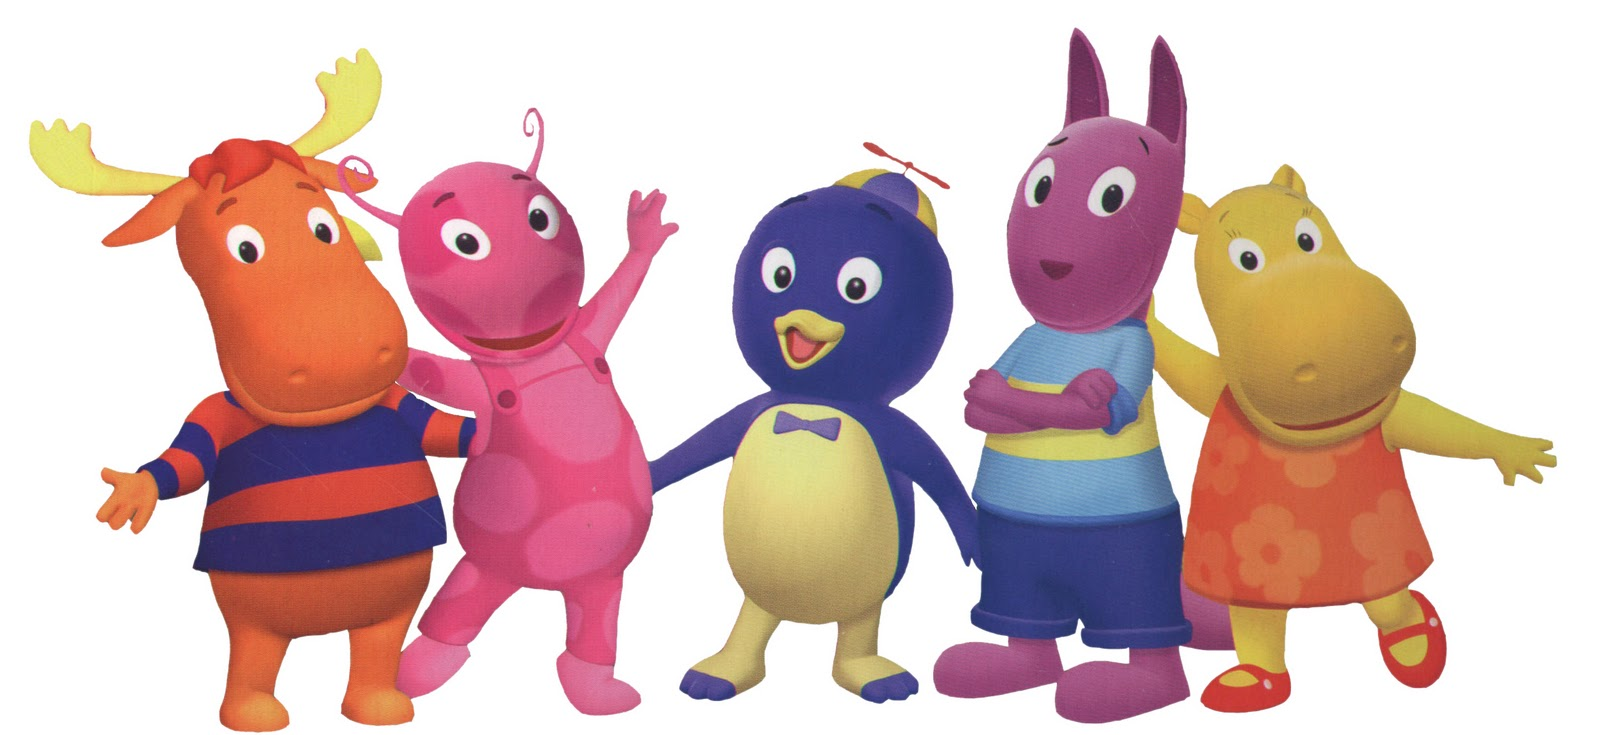 Uncategorized The Backyardigans Animals sneak peek staying young with the backyardigans imaginary story then reverts back to their backyard and characters all rush house of person who offered snack